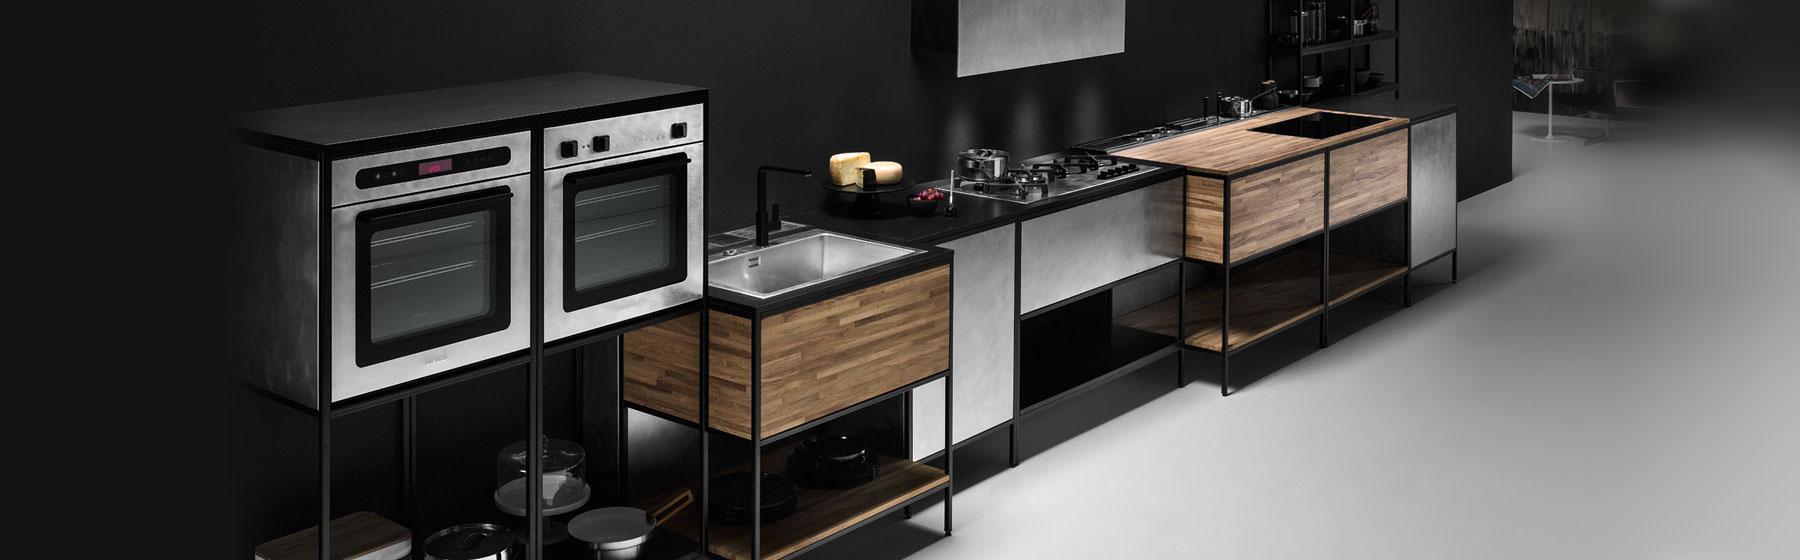 Domestic Kitchen Appliances Kitchen Appliances Ovens Hobs Sinks And Bowls